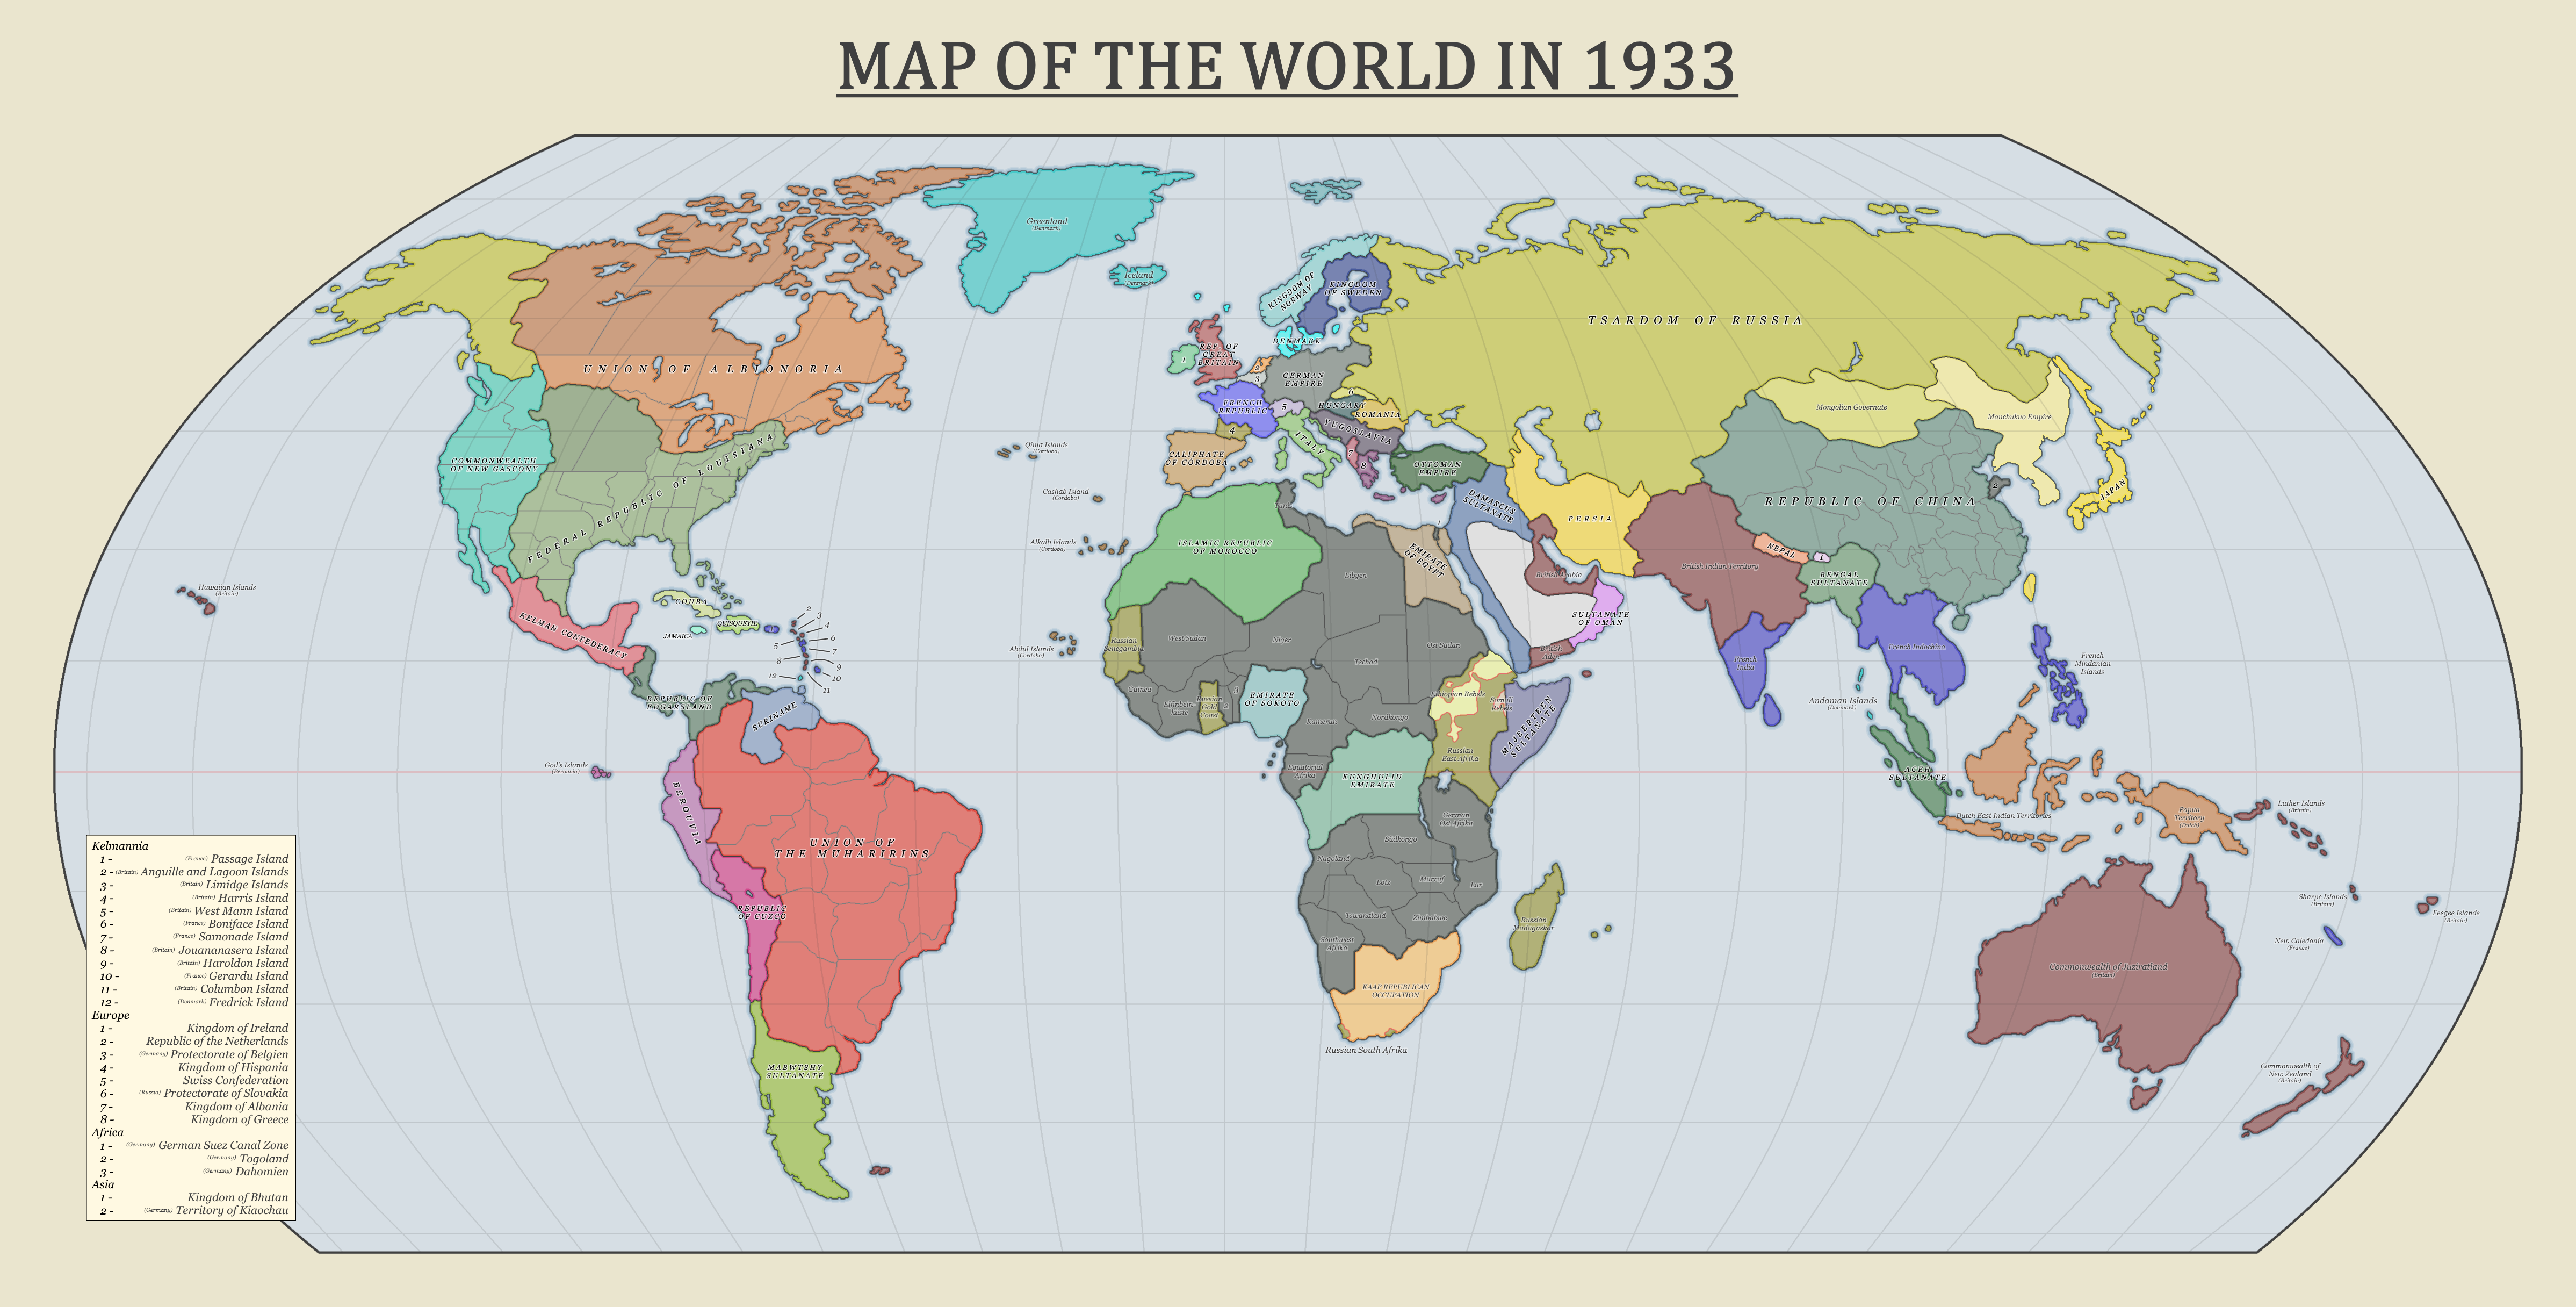 World Map 1933.Map Of The World In 1933 Imaginarymaps